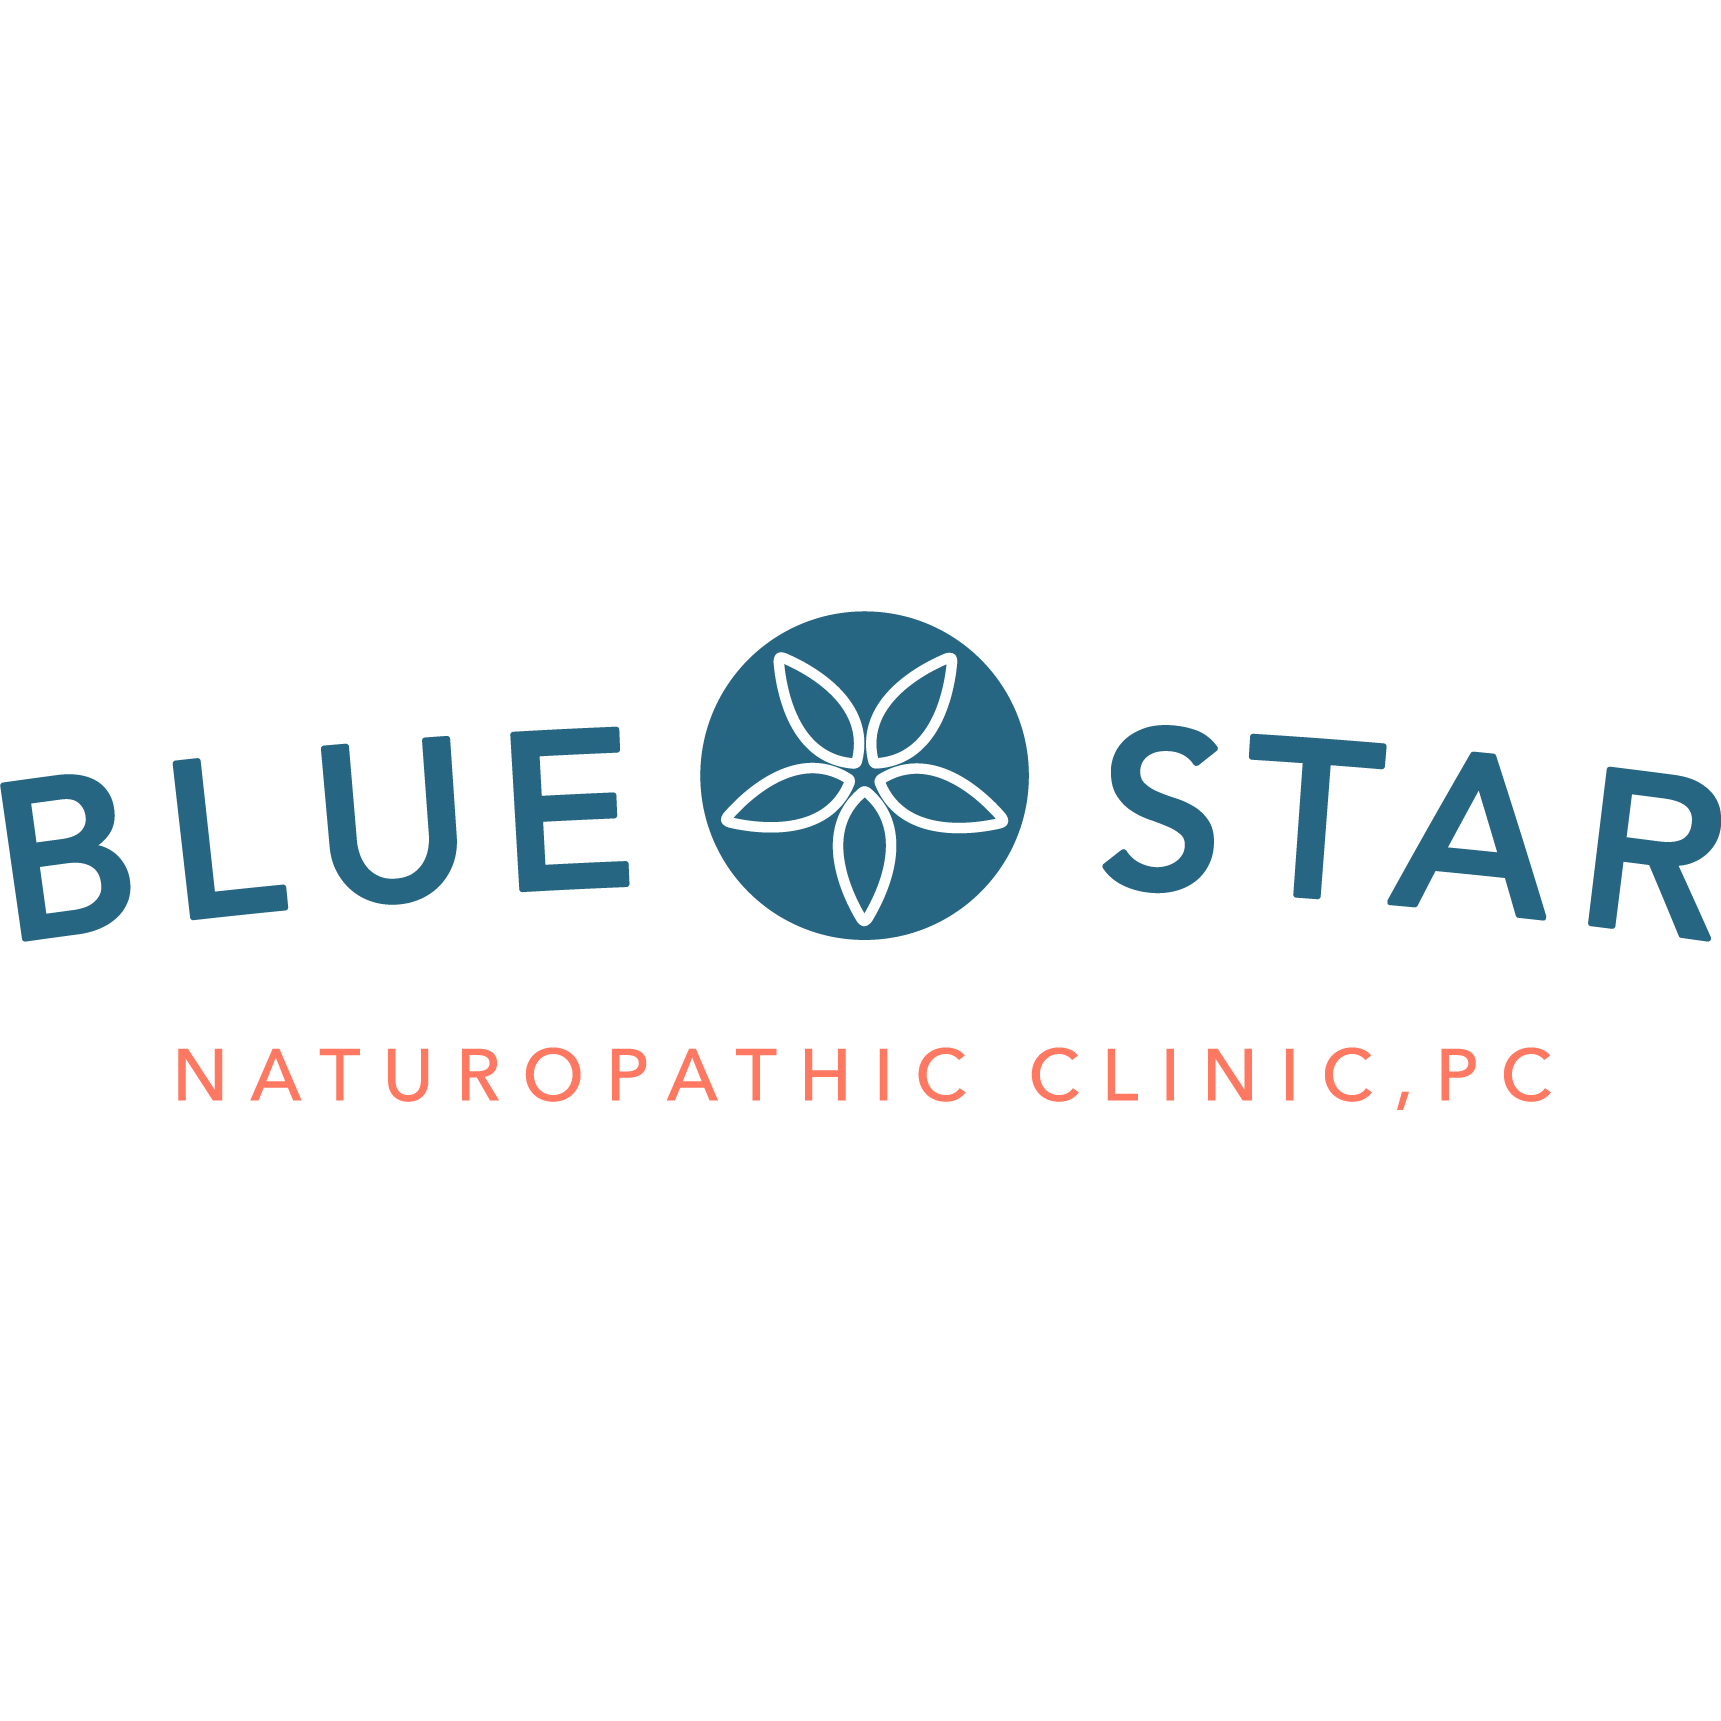 Blue Star Naturopathic Clinic image 7